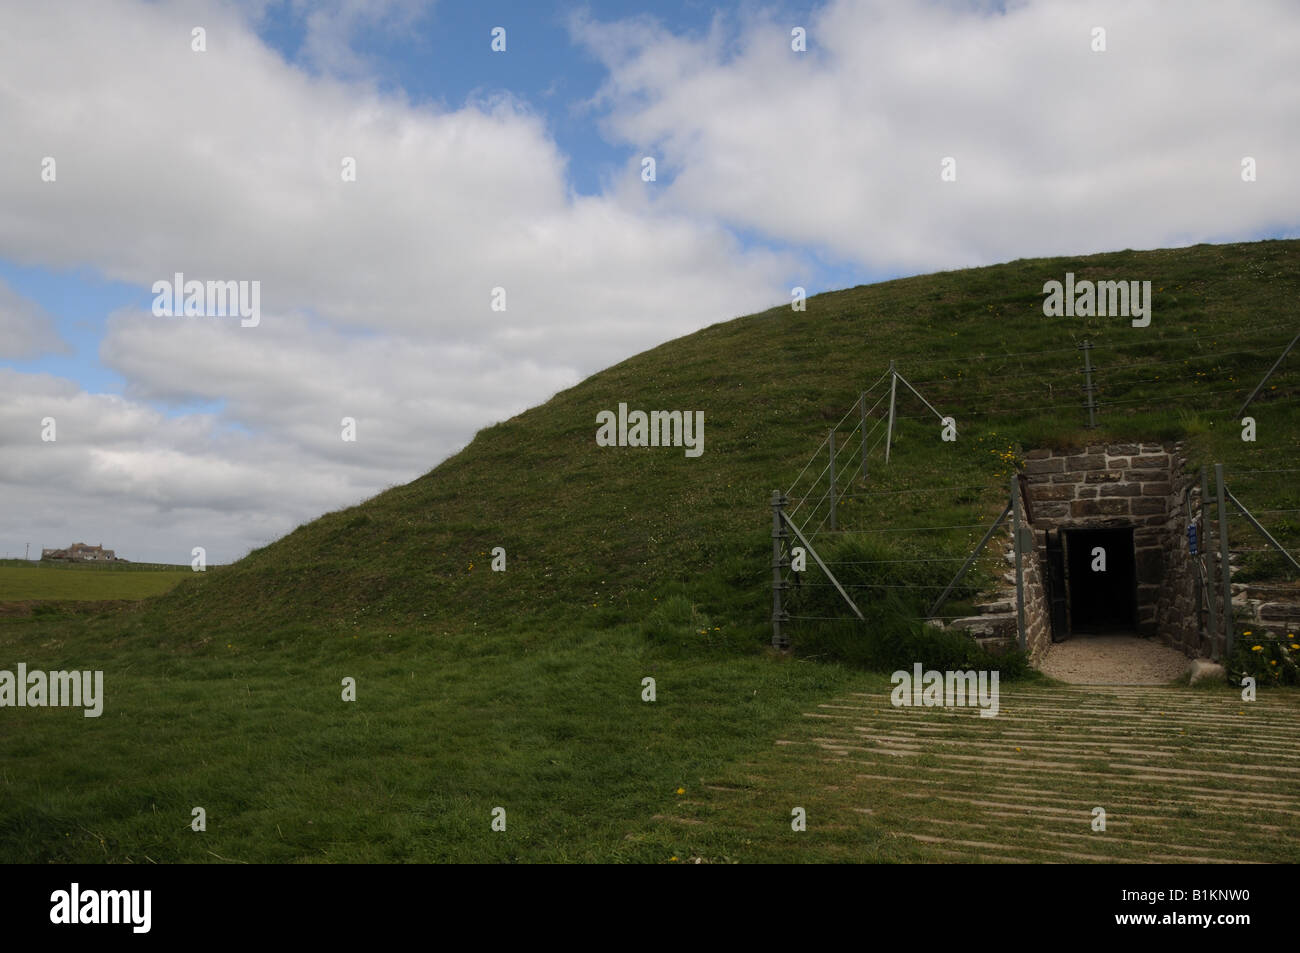 The entrance to the Neolithic burial mound at Maeshowe in Orkney, Scotland. - Stock Image